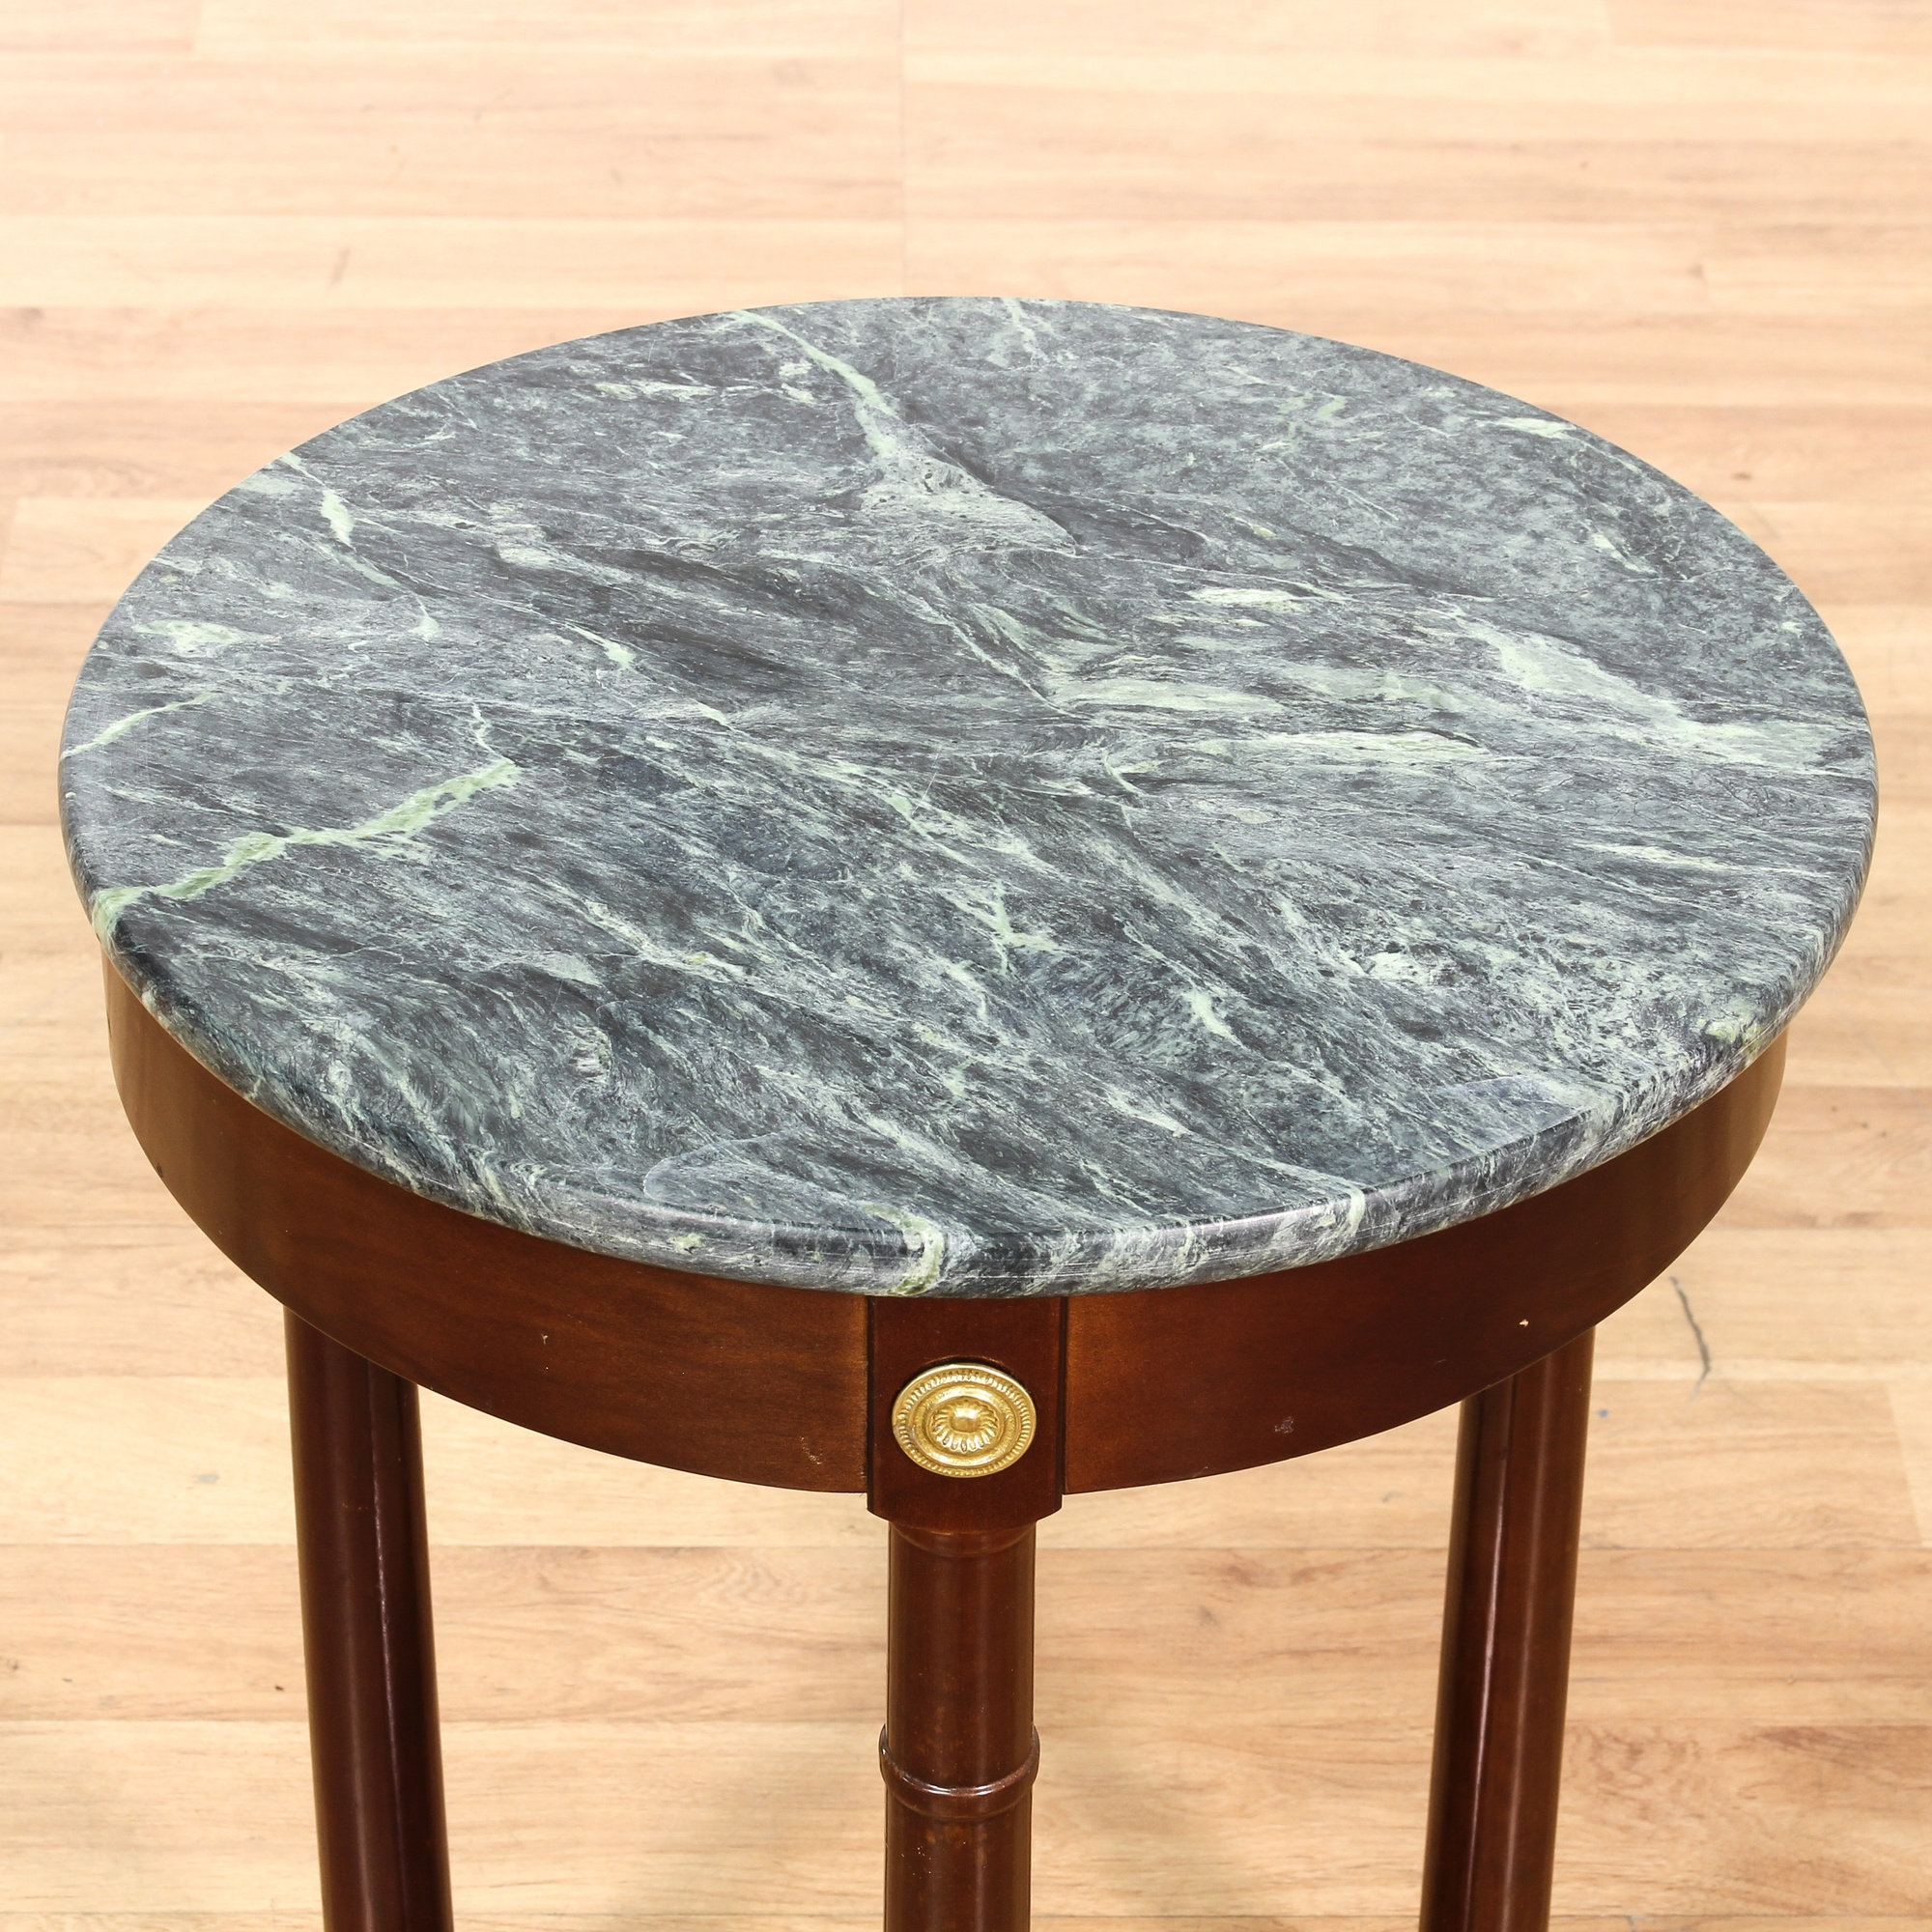 Round Green Marble : Round empire style green marble side table loveseat